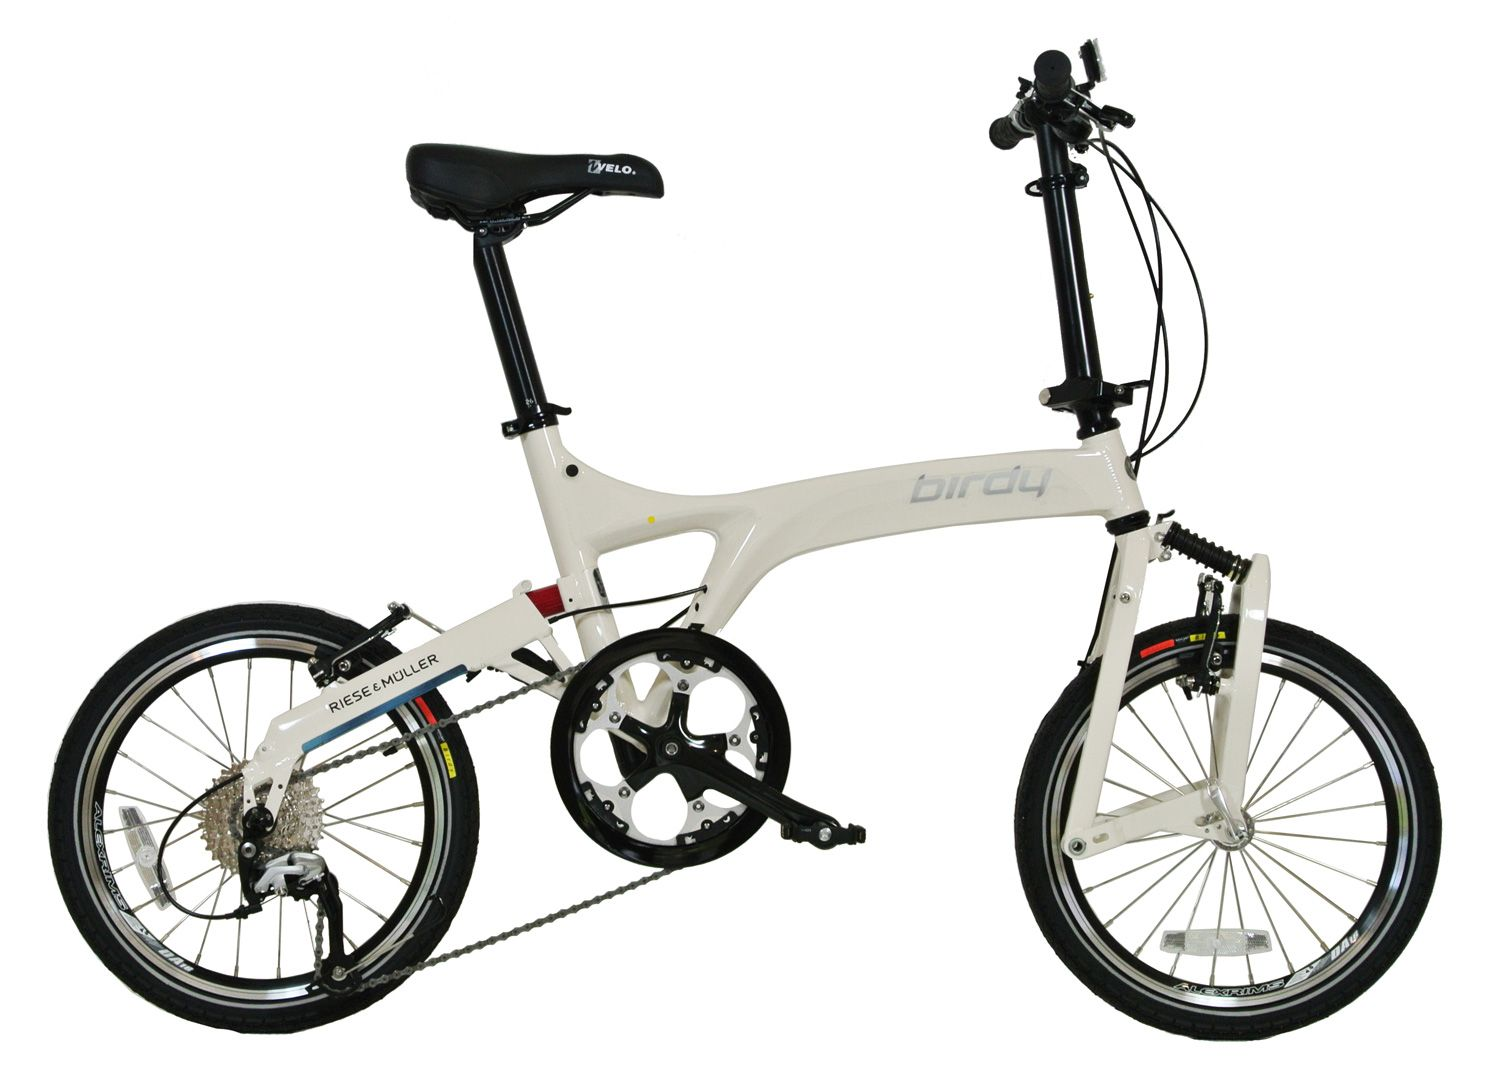 8 Best Bicycle Shops Images On Pinterest Bicycle Urban Bike And